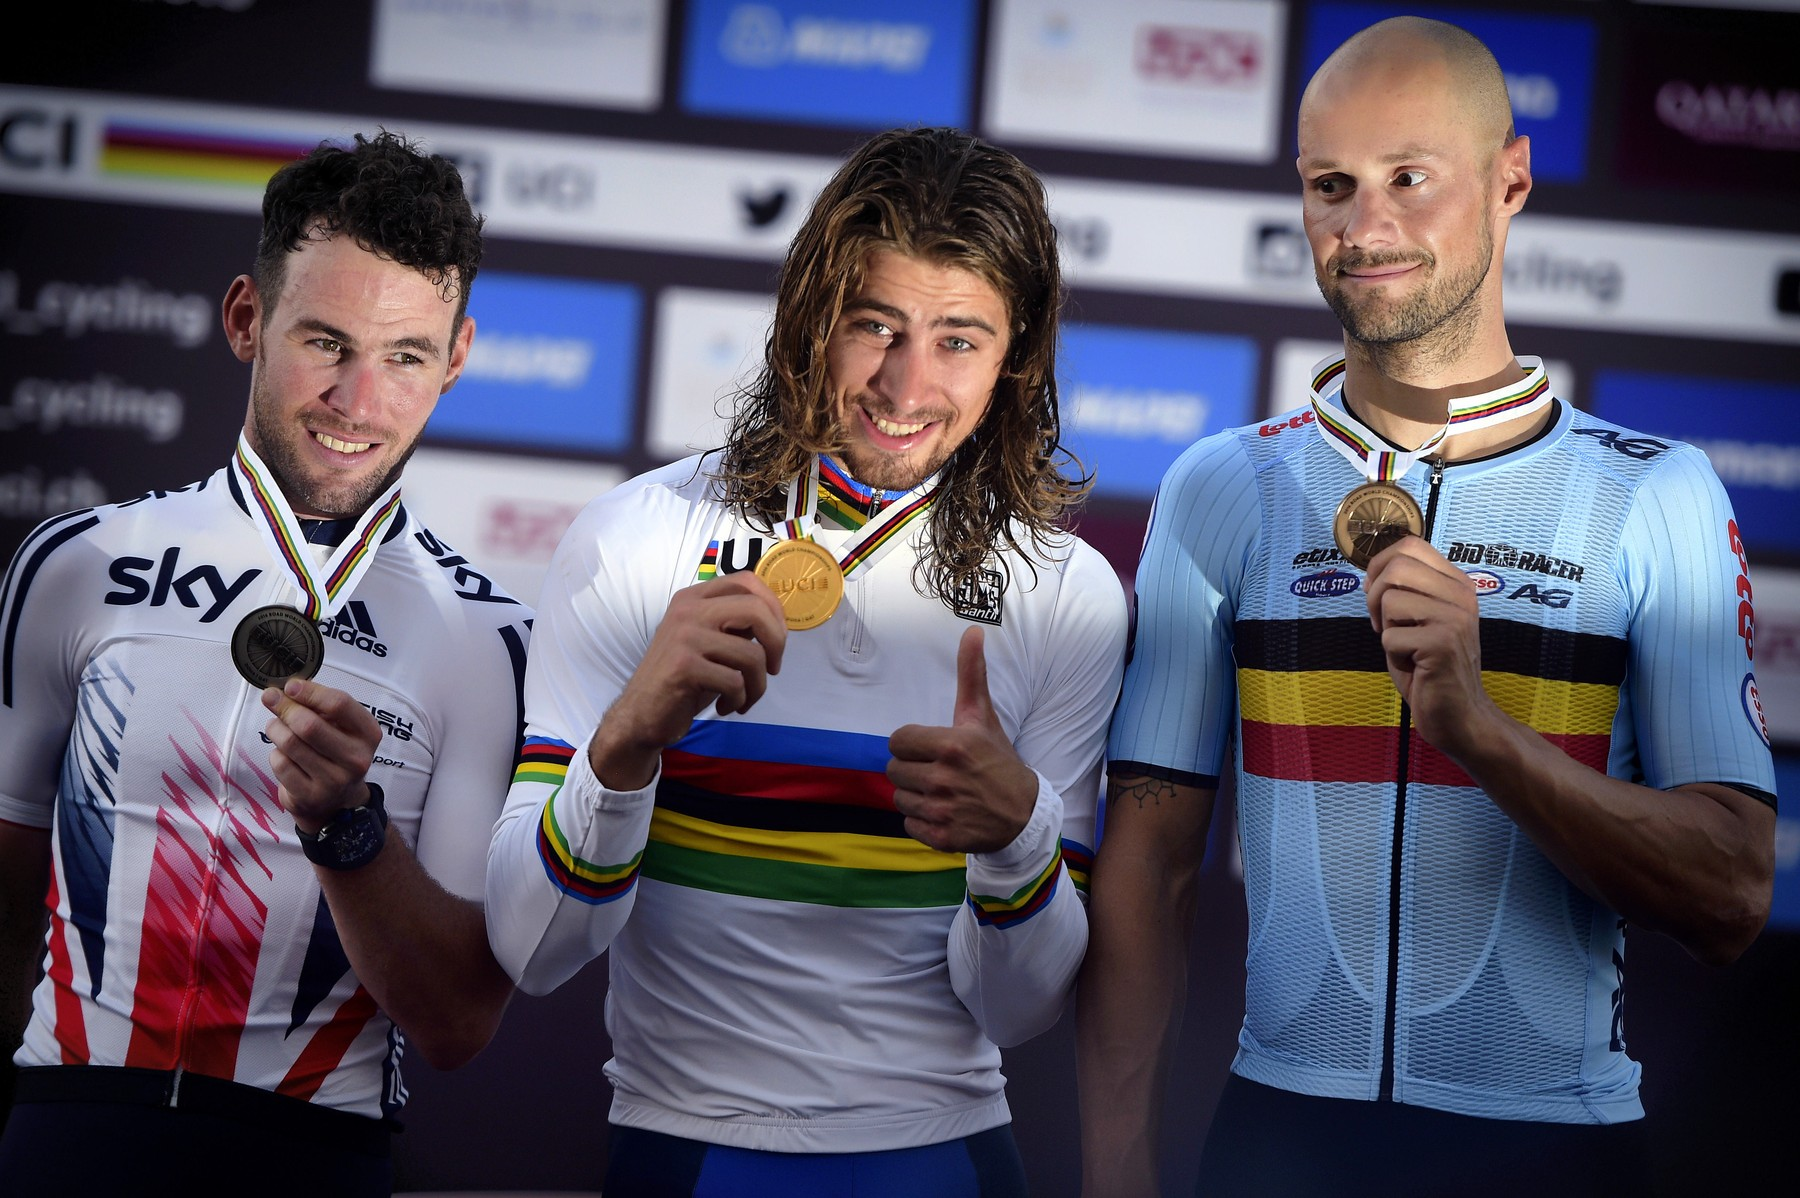 April 15, 2014 - Doha, QATAR - British Mark Cavendish of Dimension Data, Slovakian Peter Sagan of Tinkoff and Belgian Tom Boonen of team Etixx - Quick-Step pictured on the podium after the men's elite road race at the 2016 UCI World Road World Cycling Championships in Doha, Qatar, a race of 257.5 km from Doha to Doha, Sunday 16 October 2016. BELGA PHOTO YORICK JANSENS, Image: 302981991, License: Rights-managed, Restrictions: * Belgium, France, Germany, Luxembourg and Netherlands Rights OUT *, Model Release: no, Credit line: Profimedia, Zuma Press - News